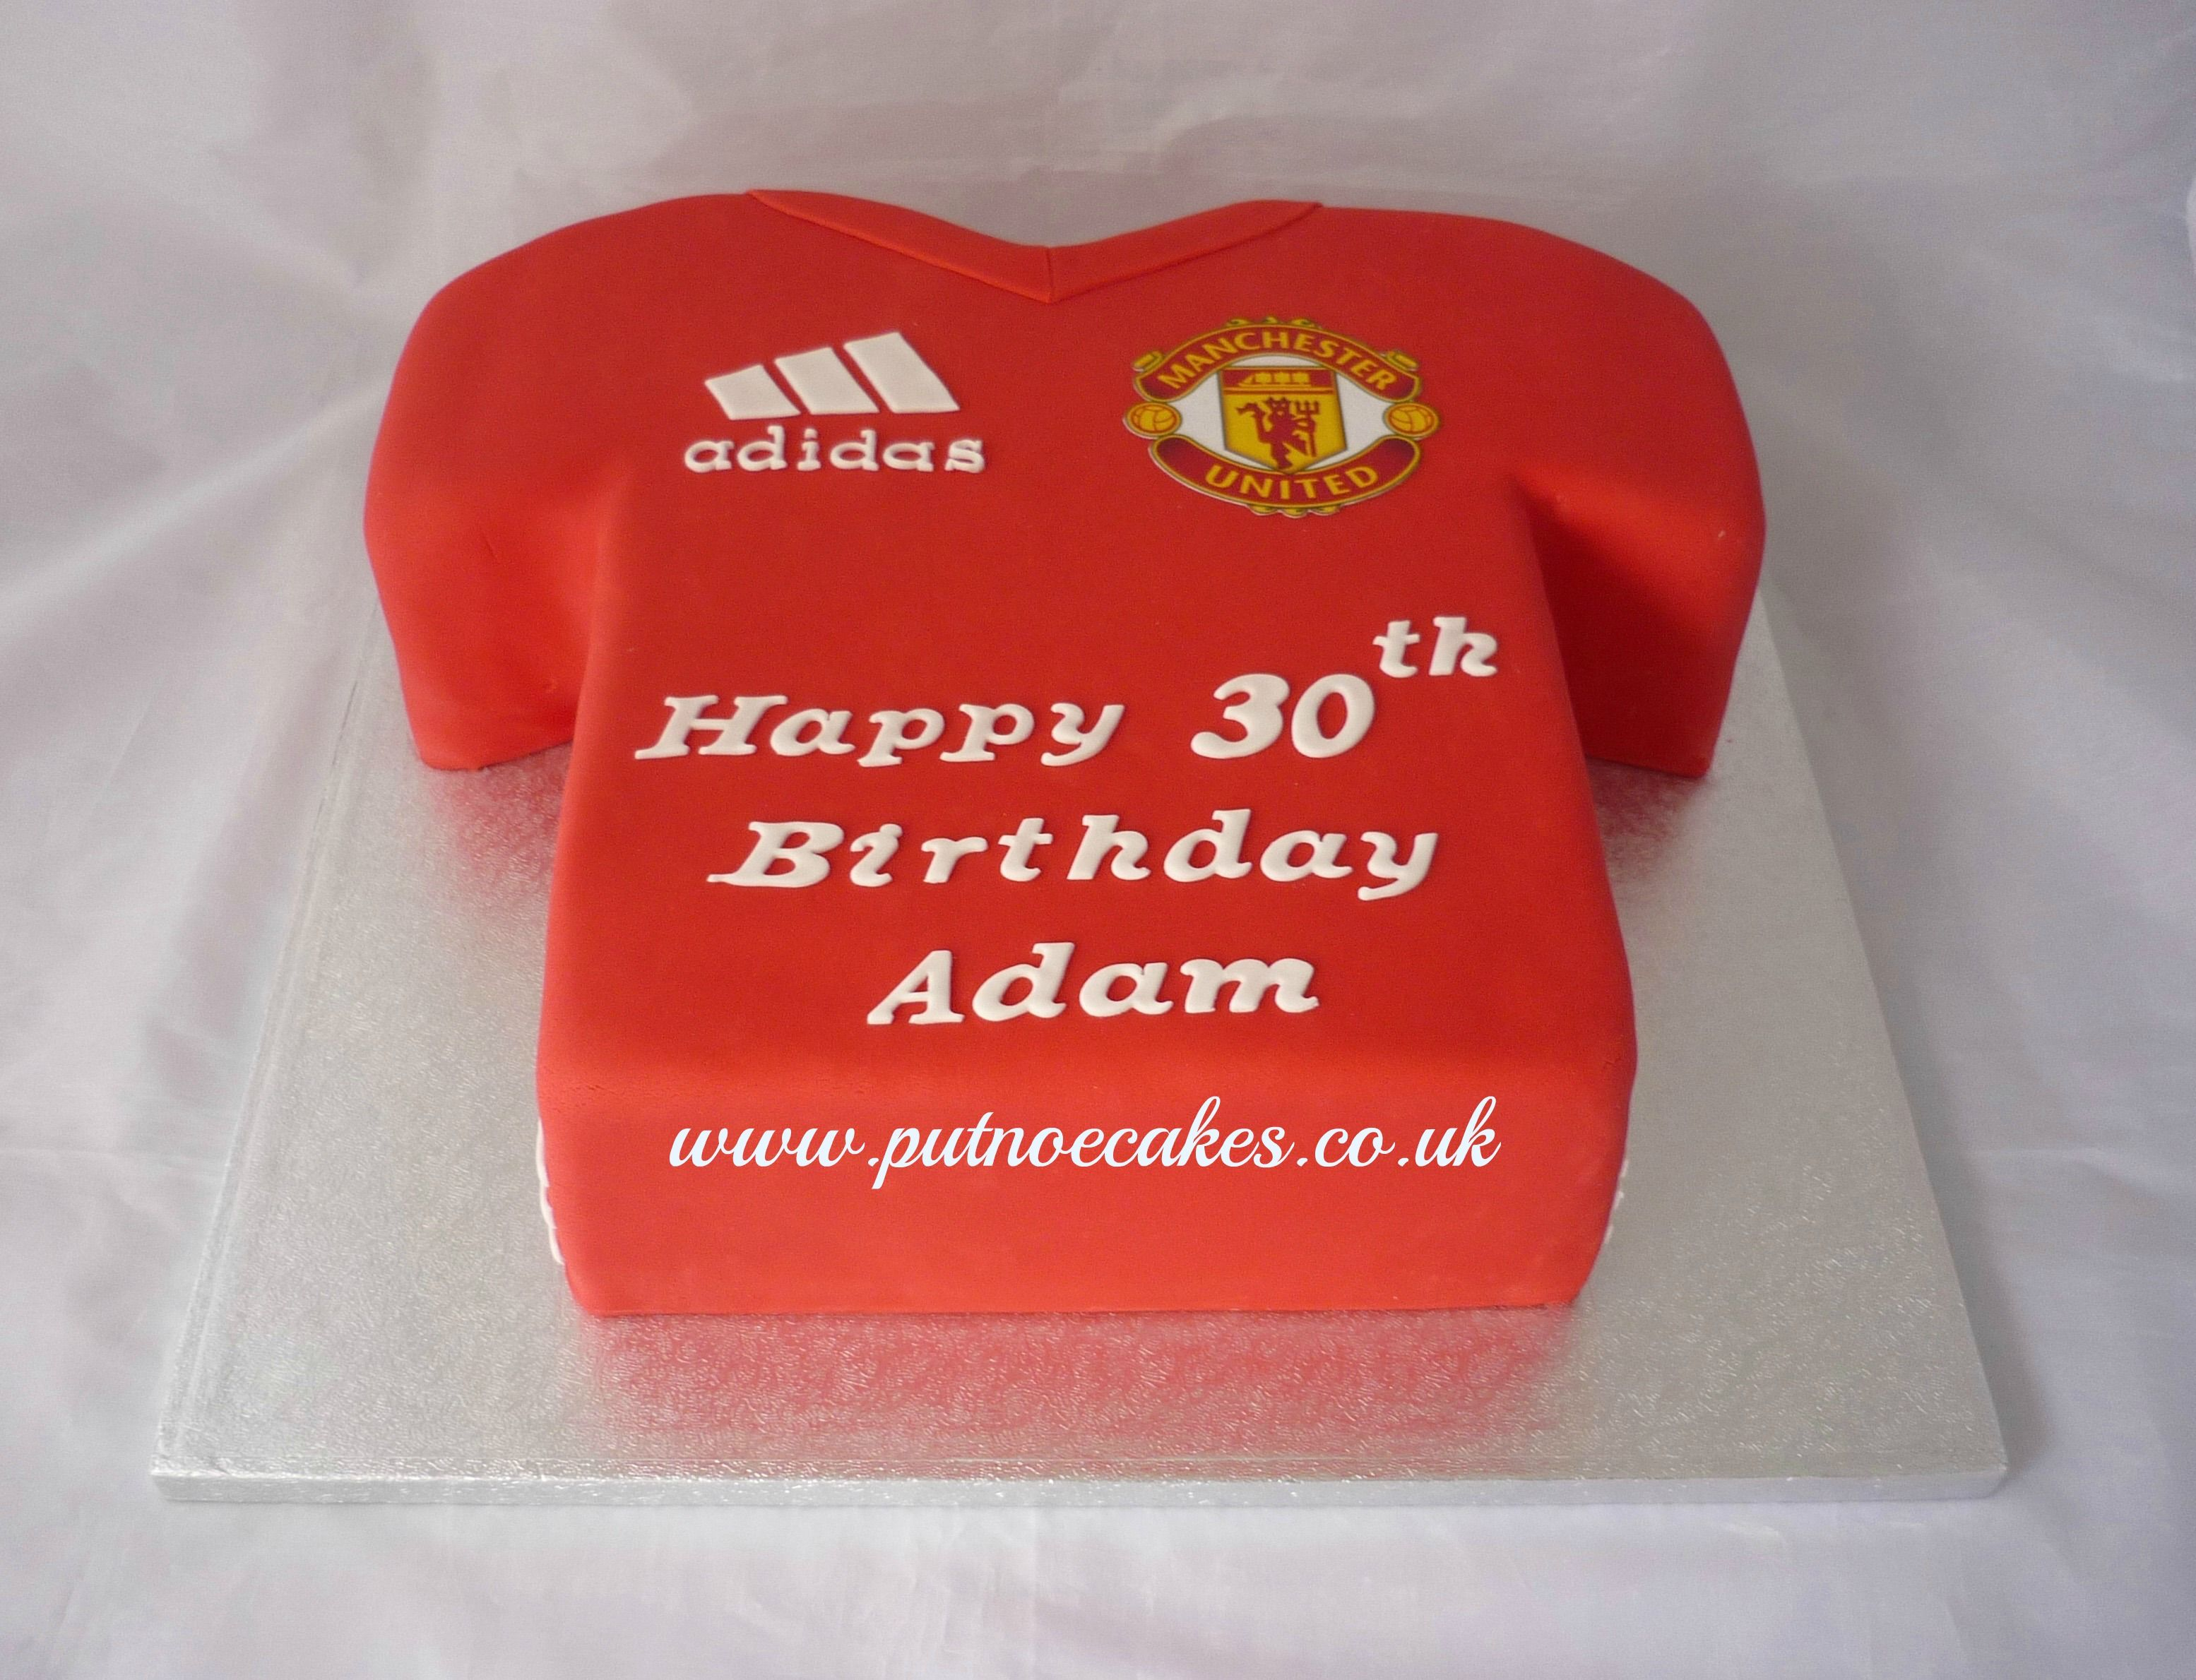 Manchester United Football Club T Shirt Cake Sweet Delights Bible Cake Birthday Cakes For Men